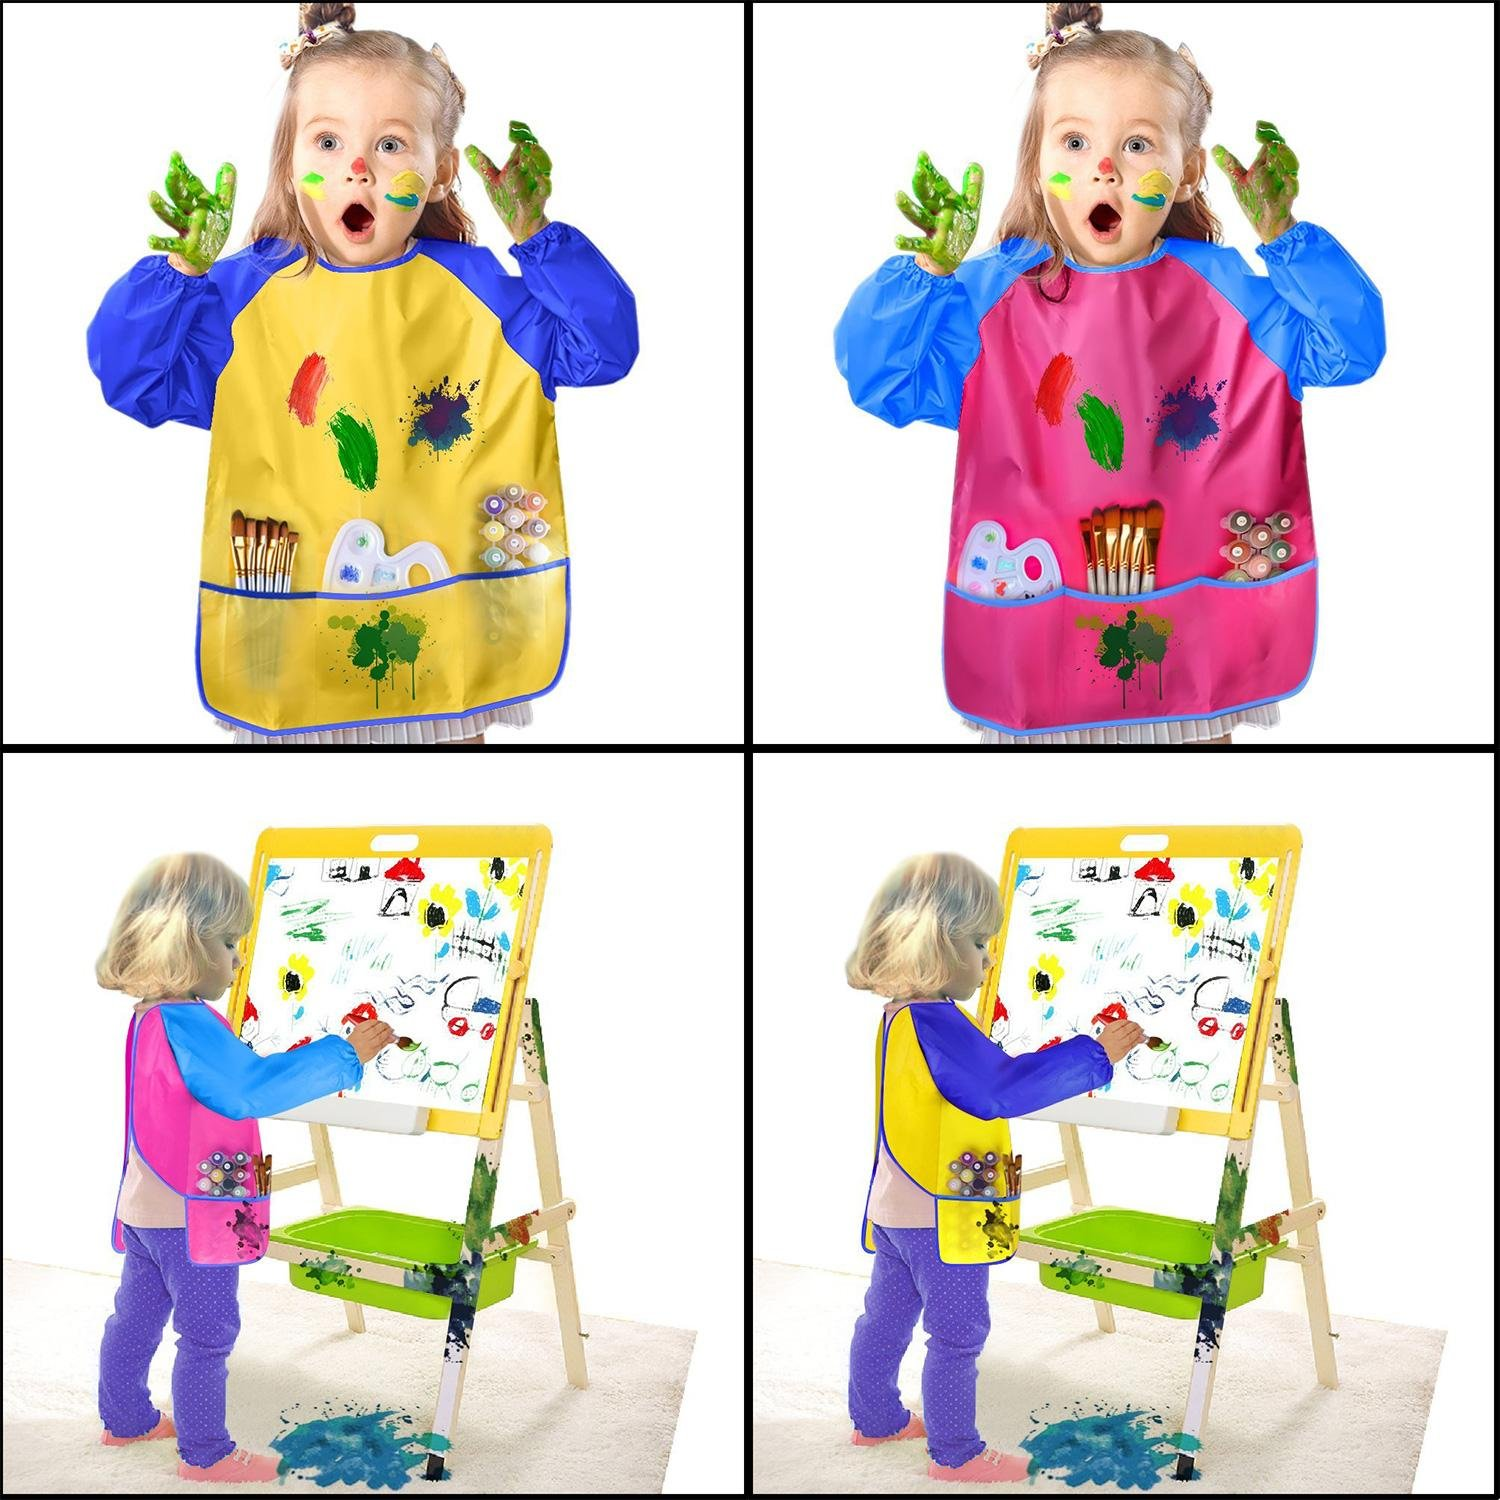 Amazon.com: Leegoal(TM) Childrens Art Smocks 2 Pack, Kids Painting Aprons, Waterproof Artist Smocks Long Sleeve Painting Apron with 3 Roomy Pockets for Age ...